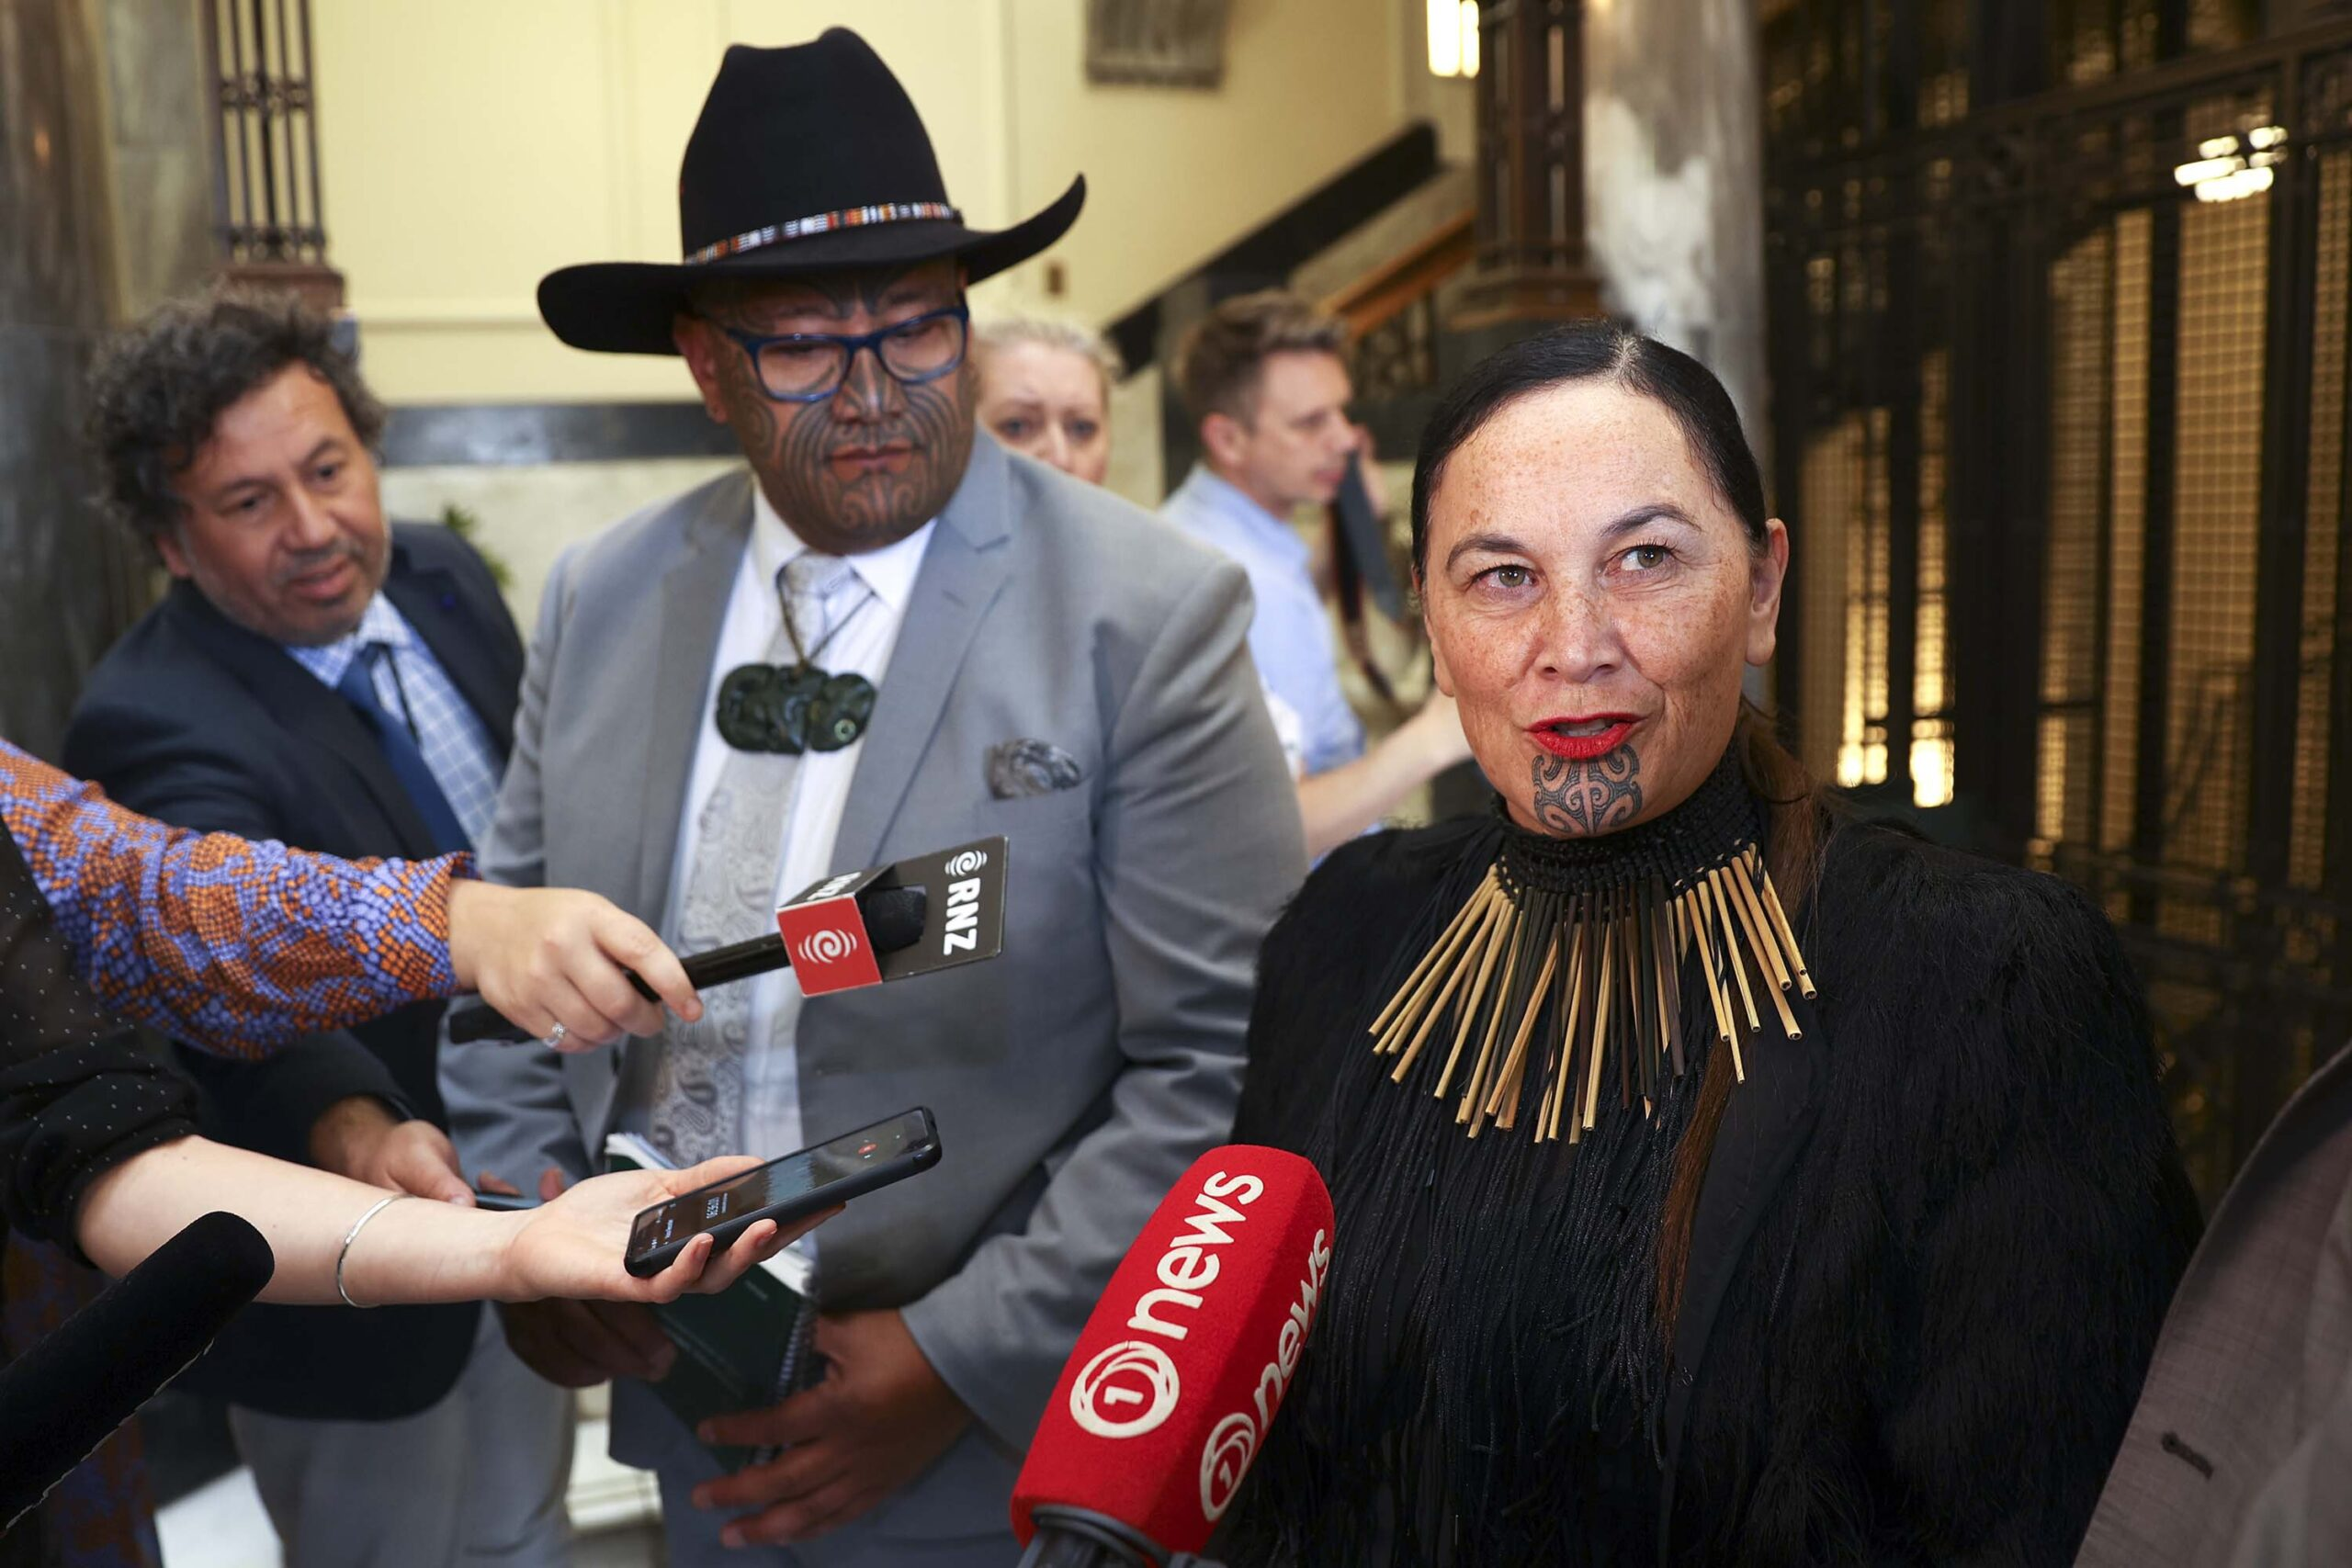 <i>Hagen Hopkins/Getty Images</i><br/>New Zealand's Māori Party campaigns to change the country's name to Aotearoa. Maori Party co-leaders Rawiri Waititi and Debbie Ngarewa-Packer here speak to the media on November 26